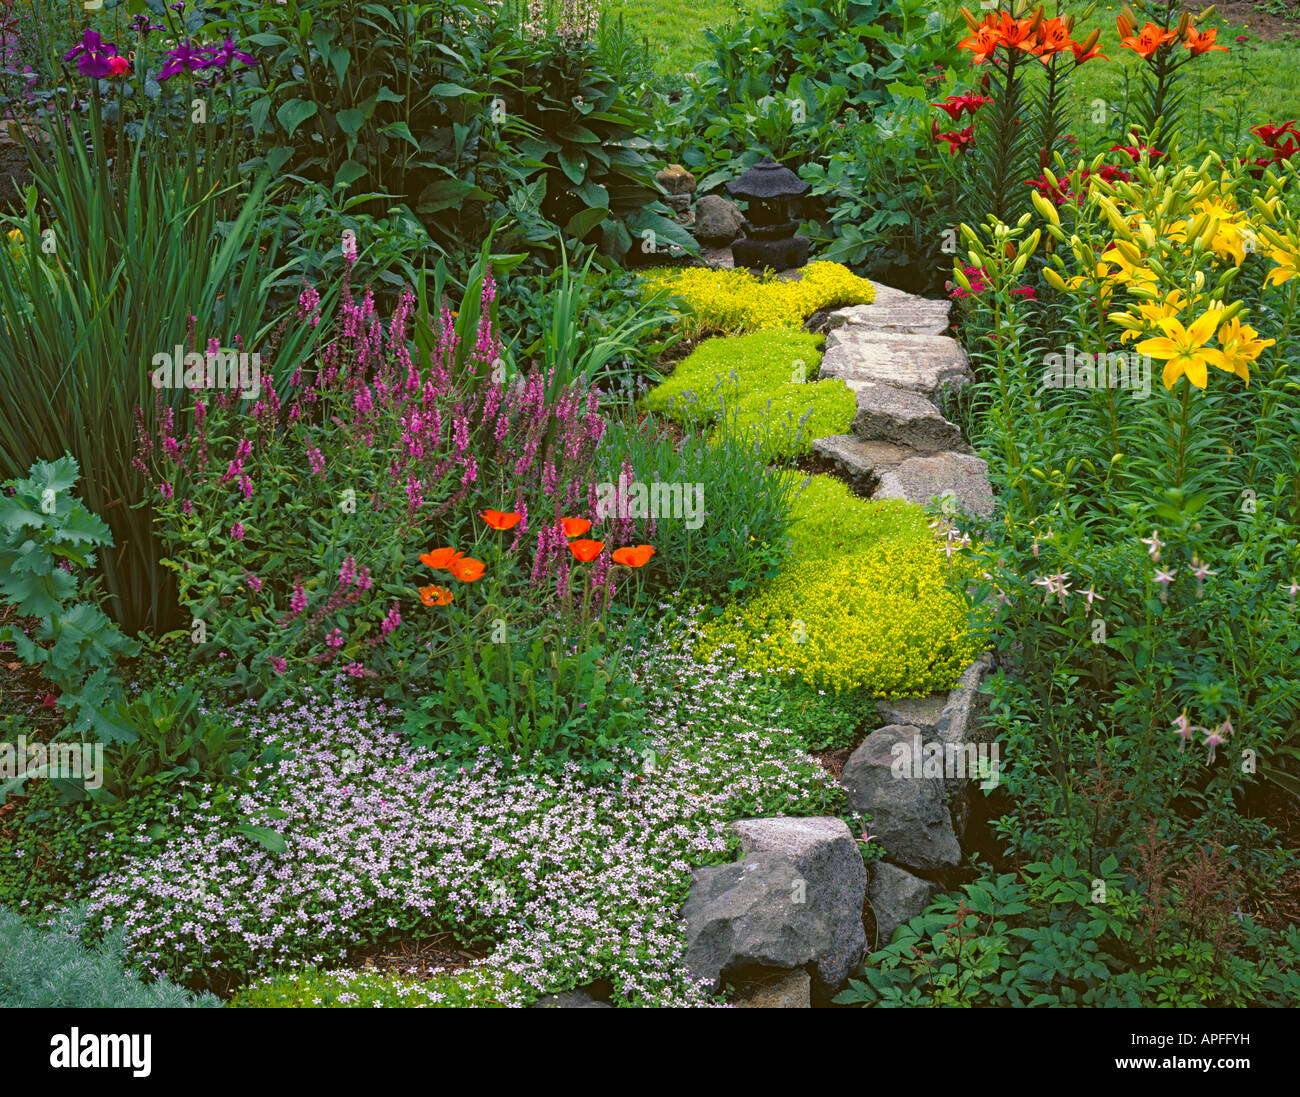 Vashon Island Wa A Garden Bed Filled With Flowers And Ground Cover